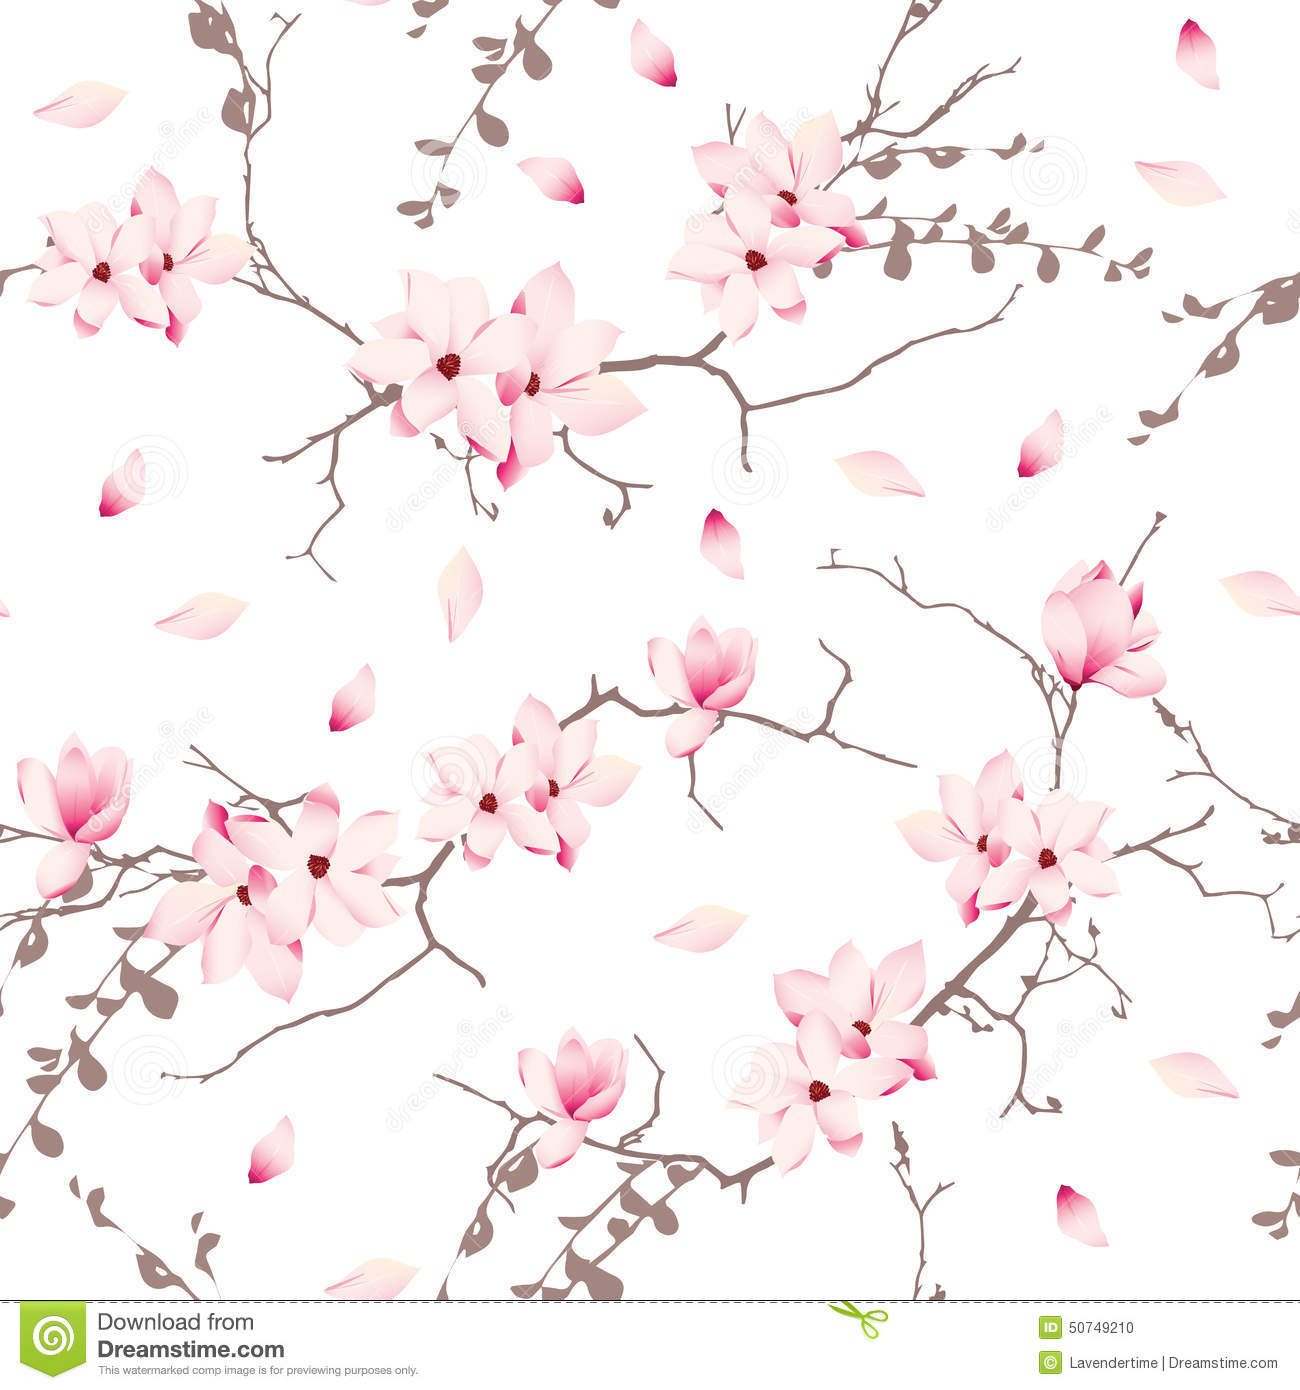 Magnolia Blossom clipart #3, Download drawings